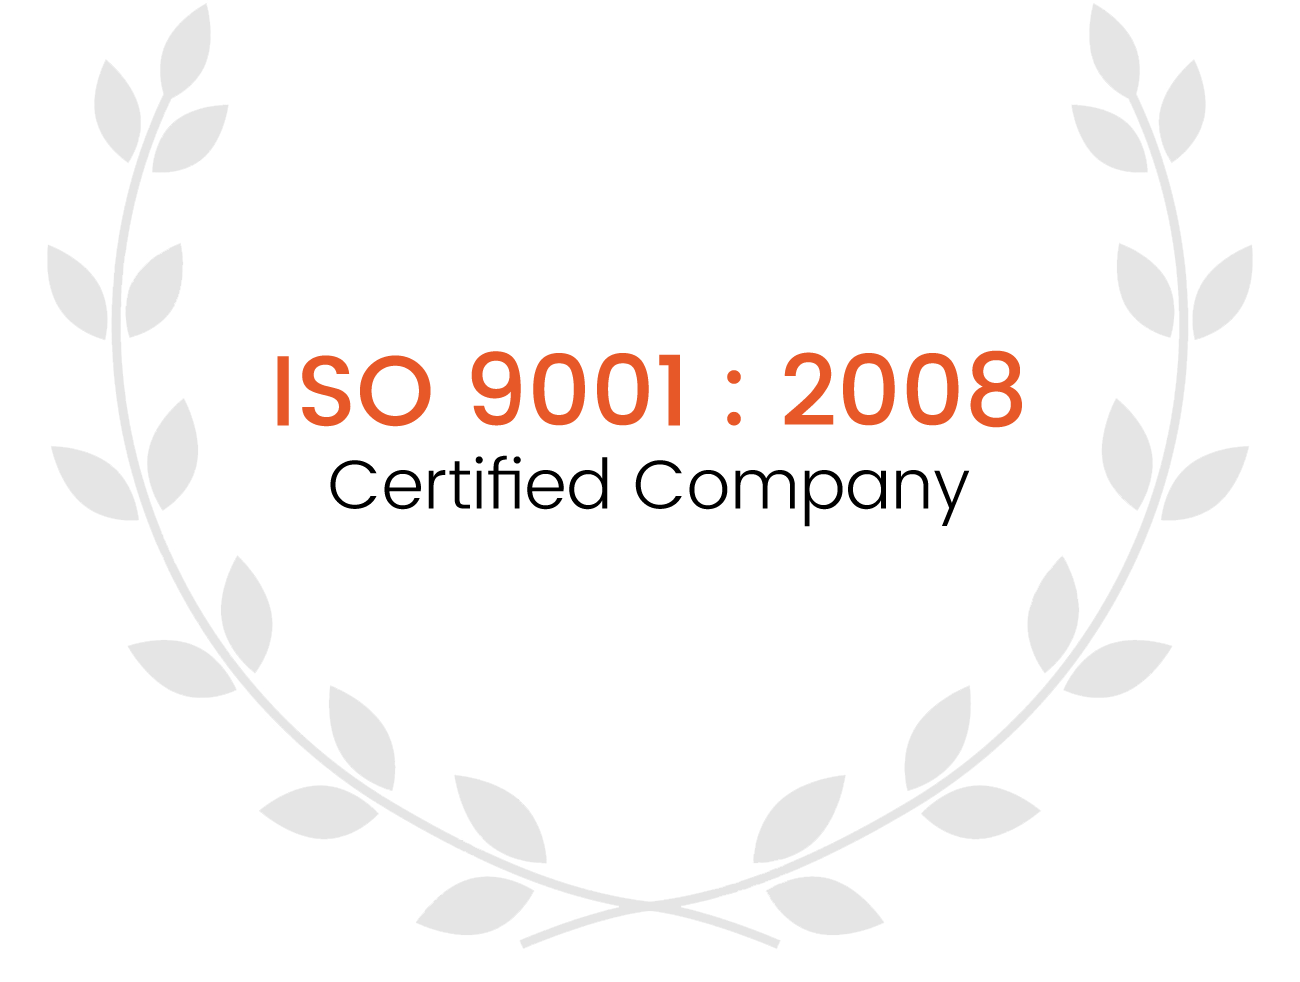 images-iso